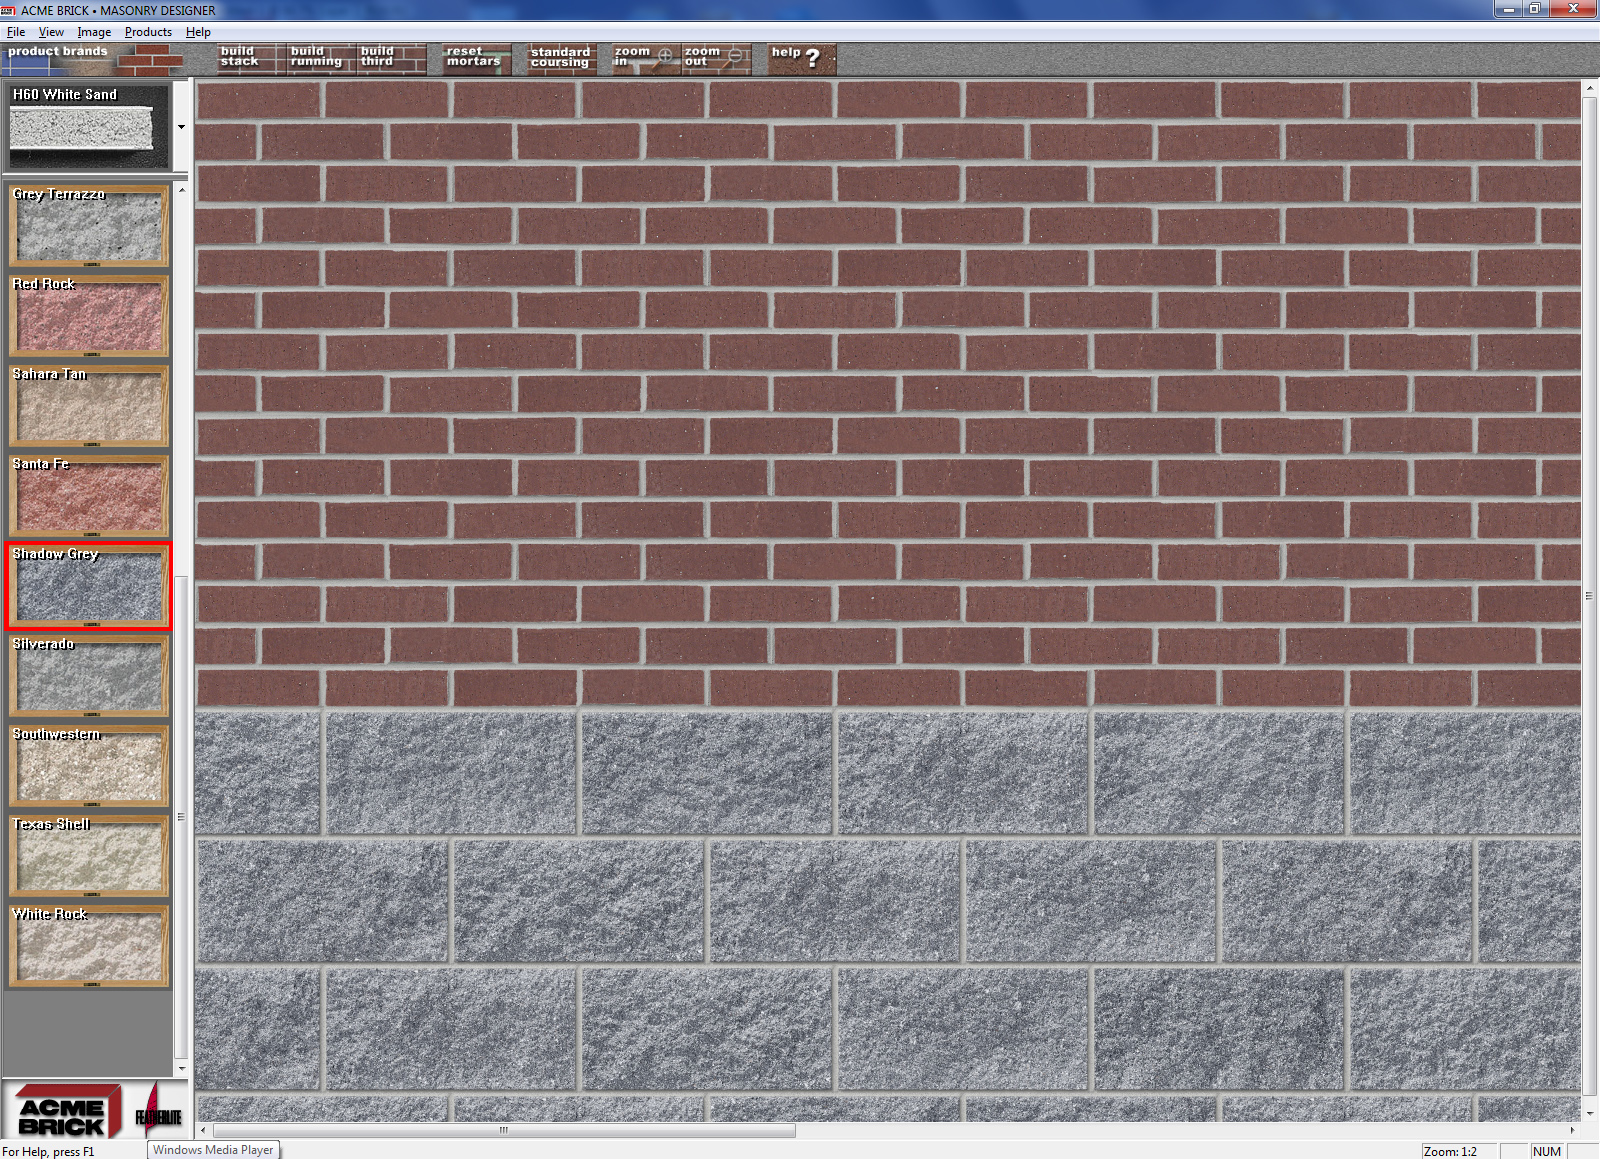 Acme Bricks Masonry Designer Design Software Expands to Include